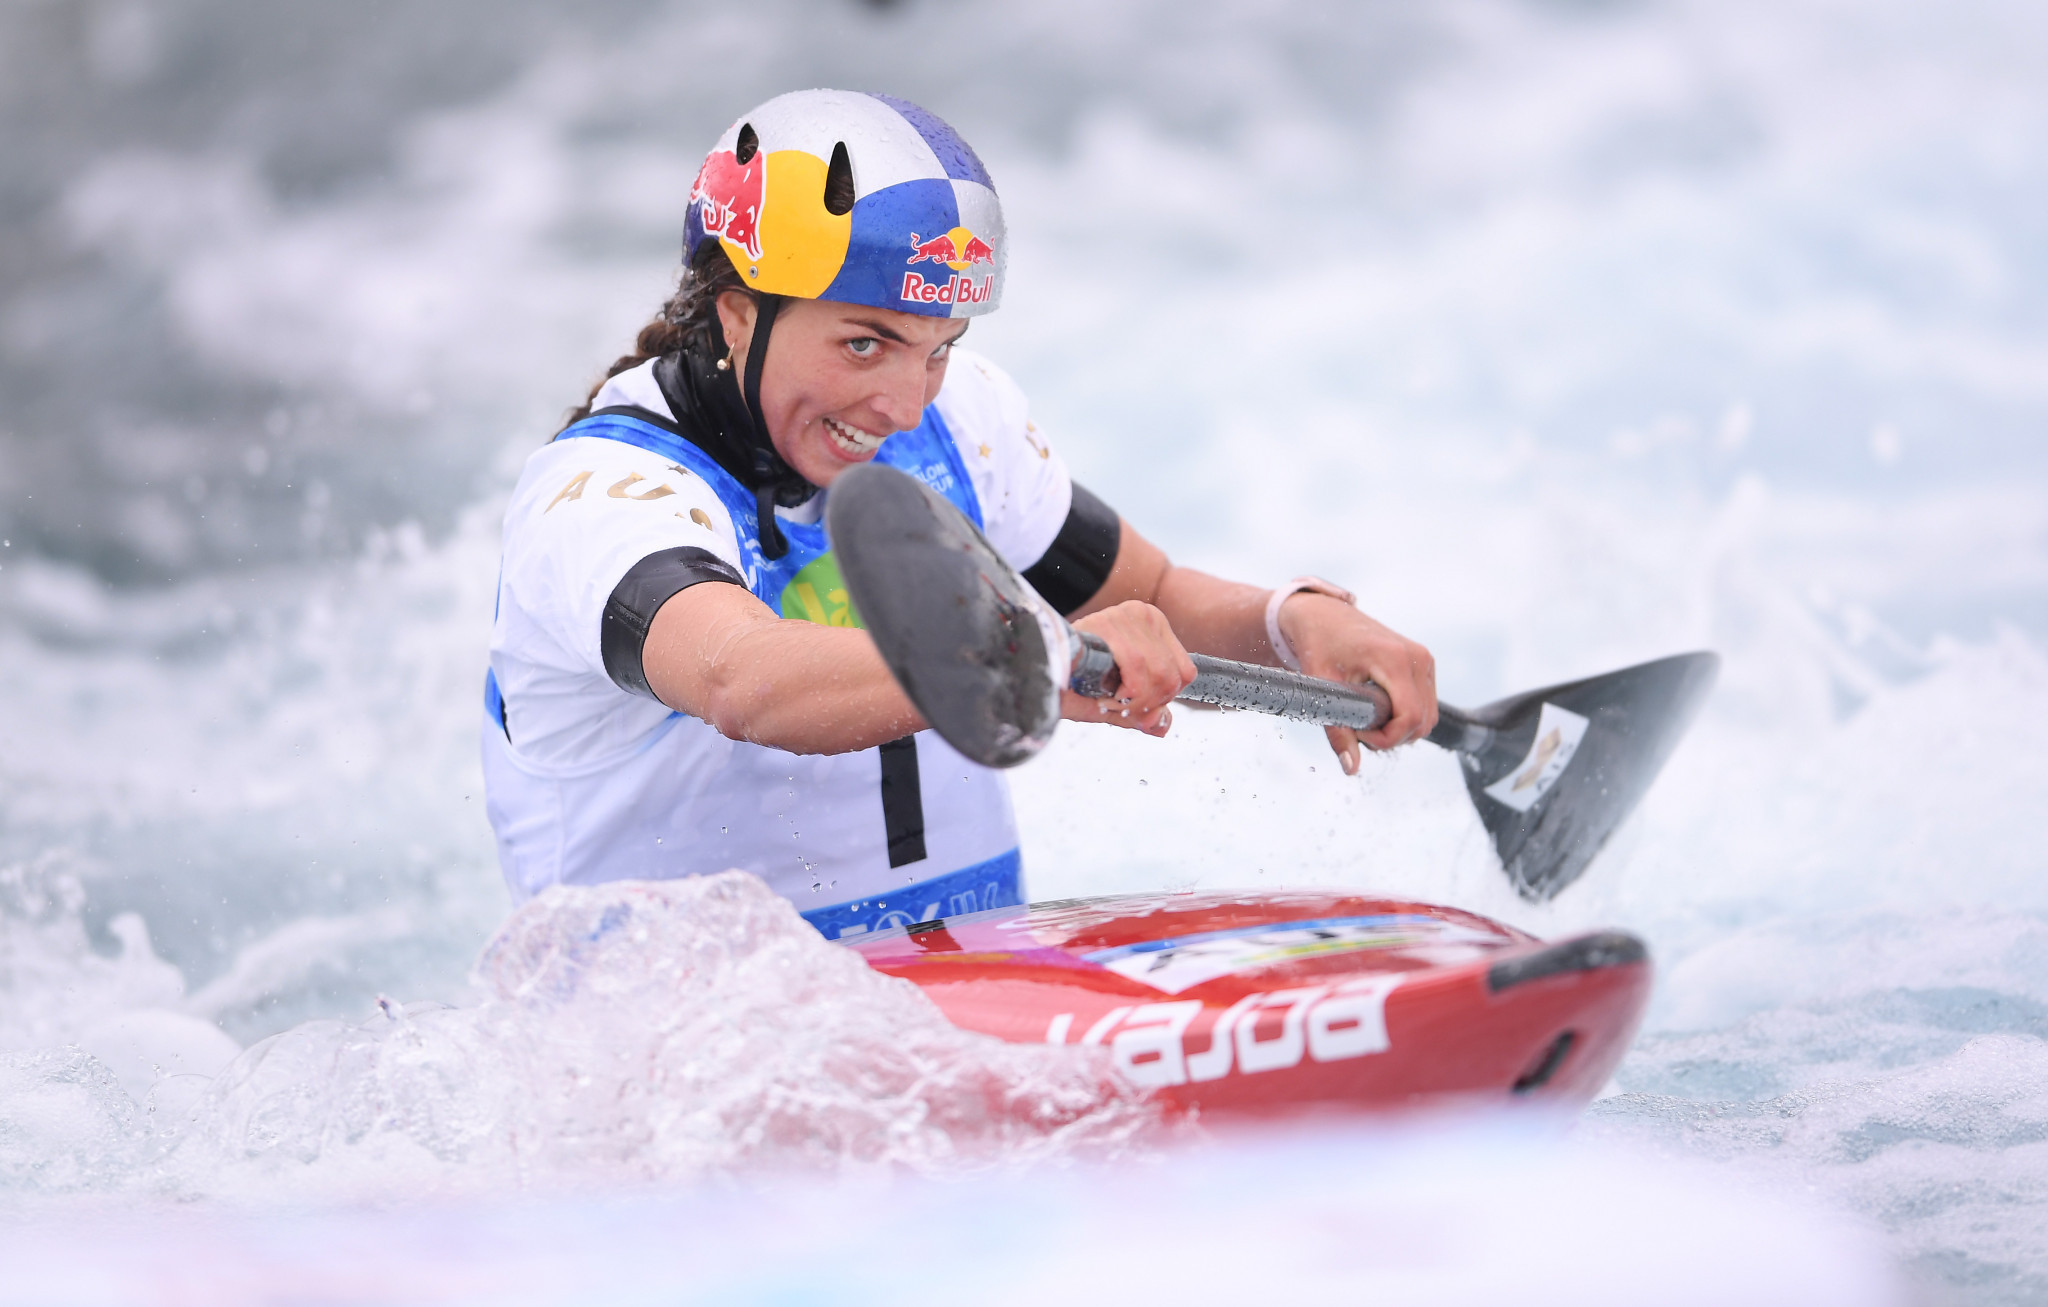 Fox backs up C1 success with K1 title at ICF Canoe Slalom World Cup in Germany